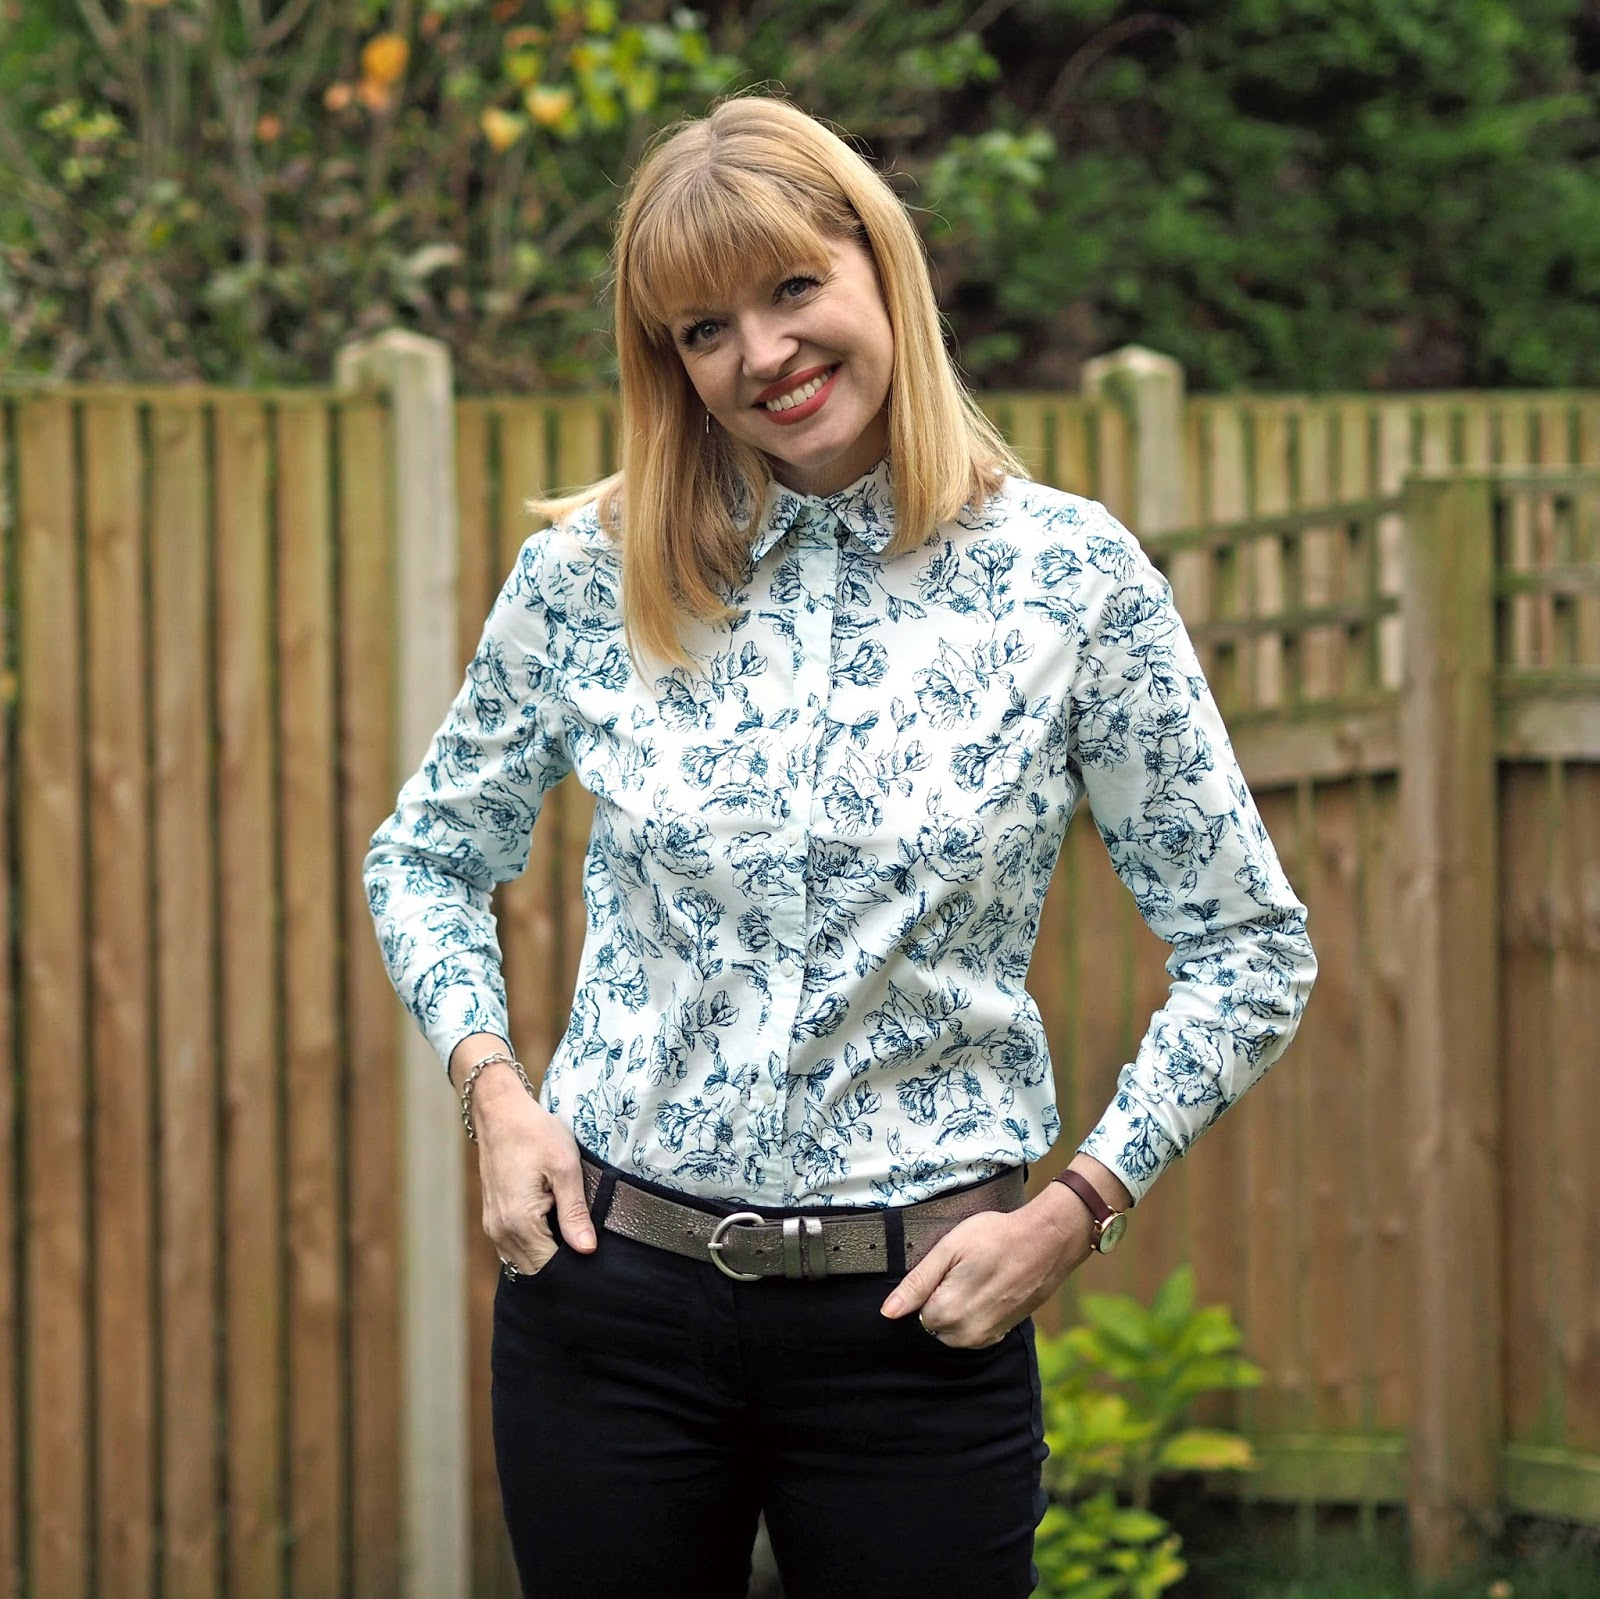 Tulchan floral shirt with skinny jeans and high heeled ankle boots, over 40 style